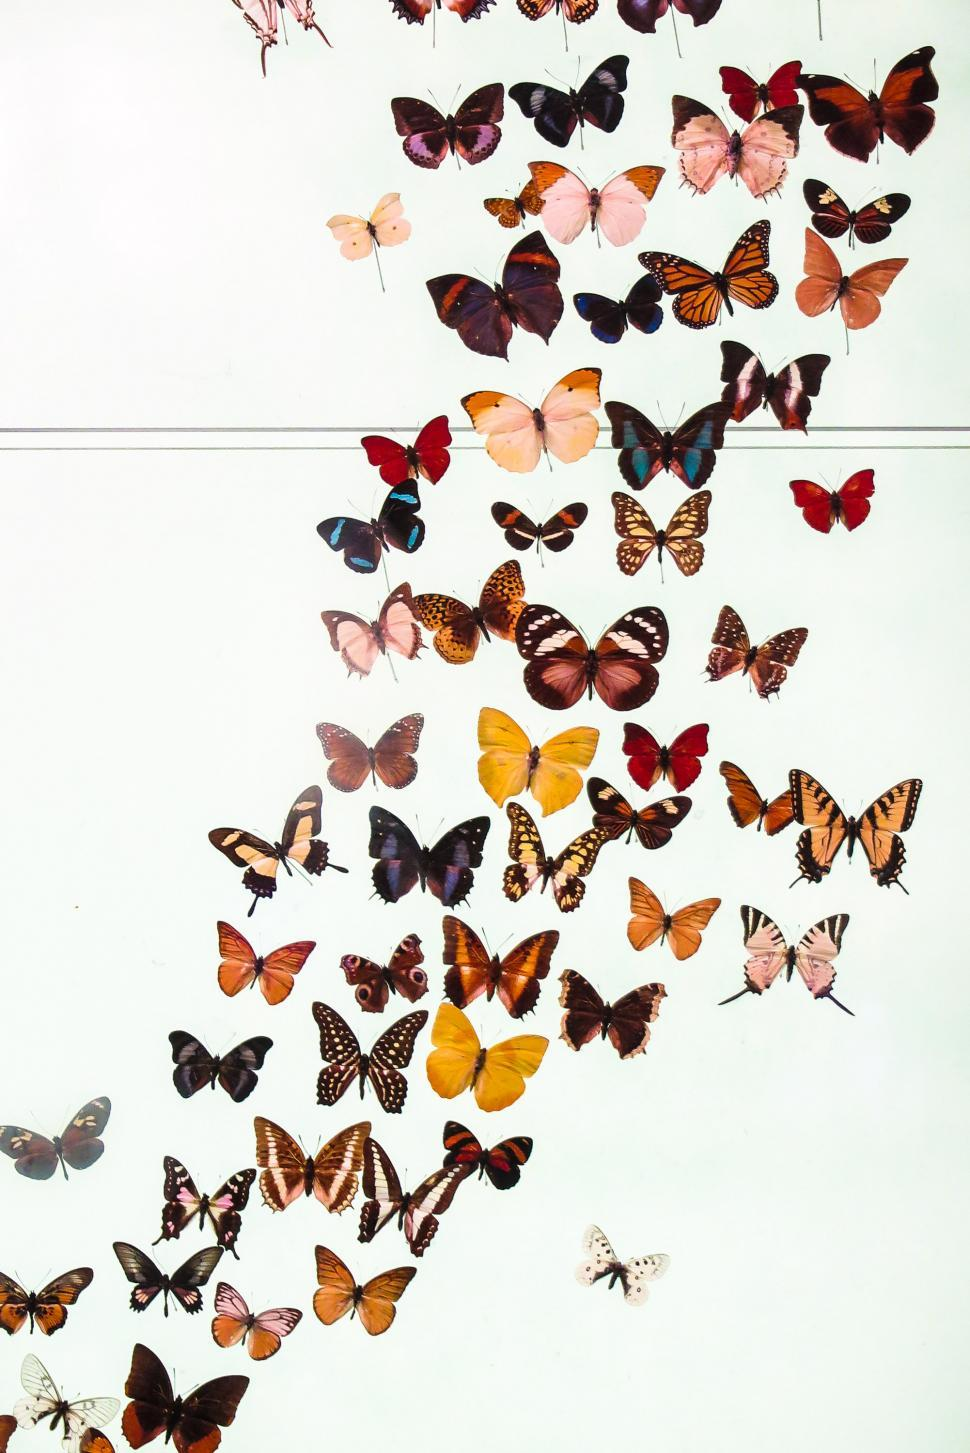 Download Free Stock Photo of Colorful butterfly exhibit